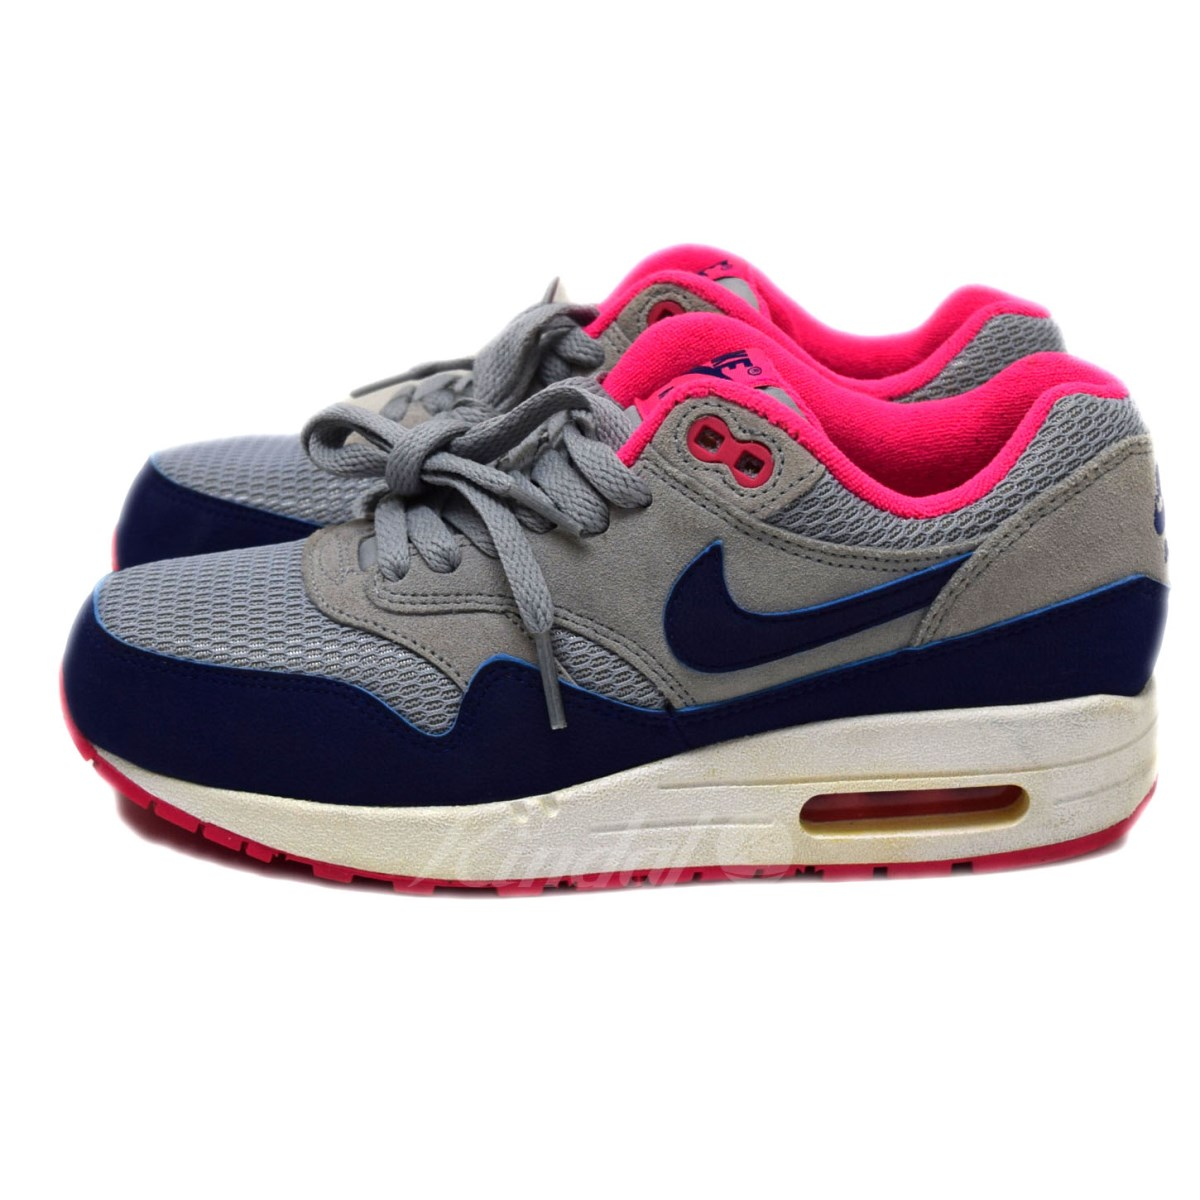 Nike Air Max 90 LT Pinkl White Women Running Shoes 537394-011 Red Nike Air  Max 90 43f6d8bb6